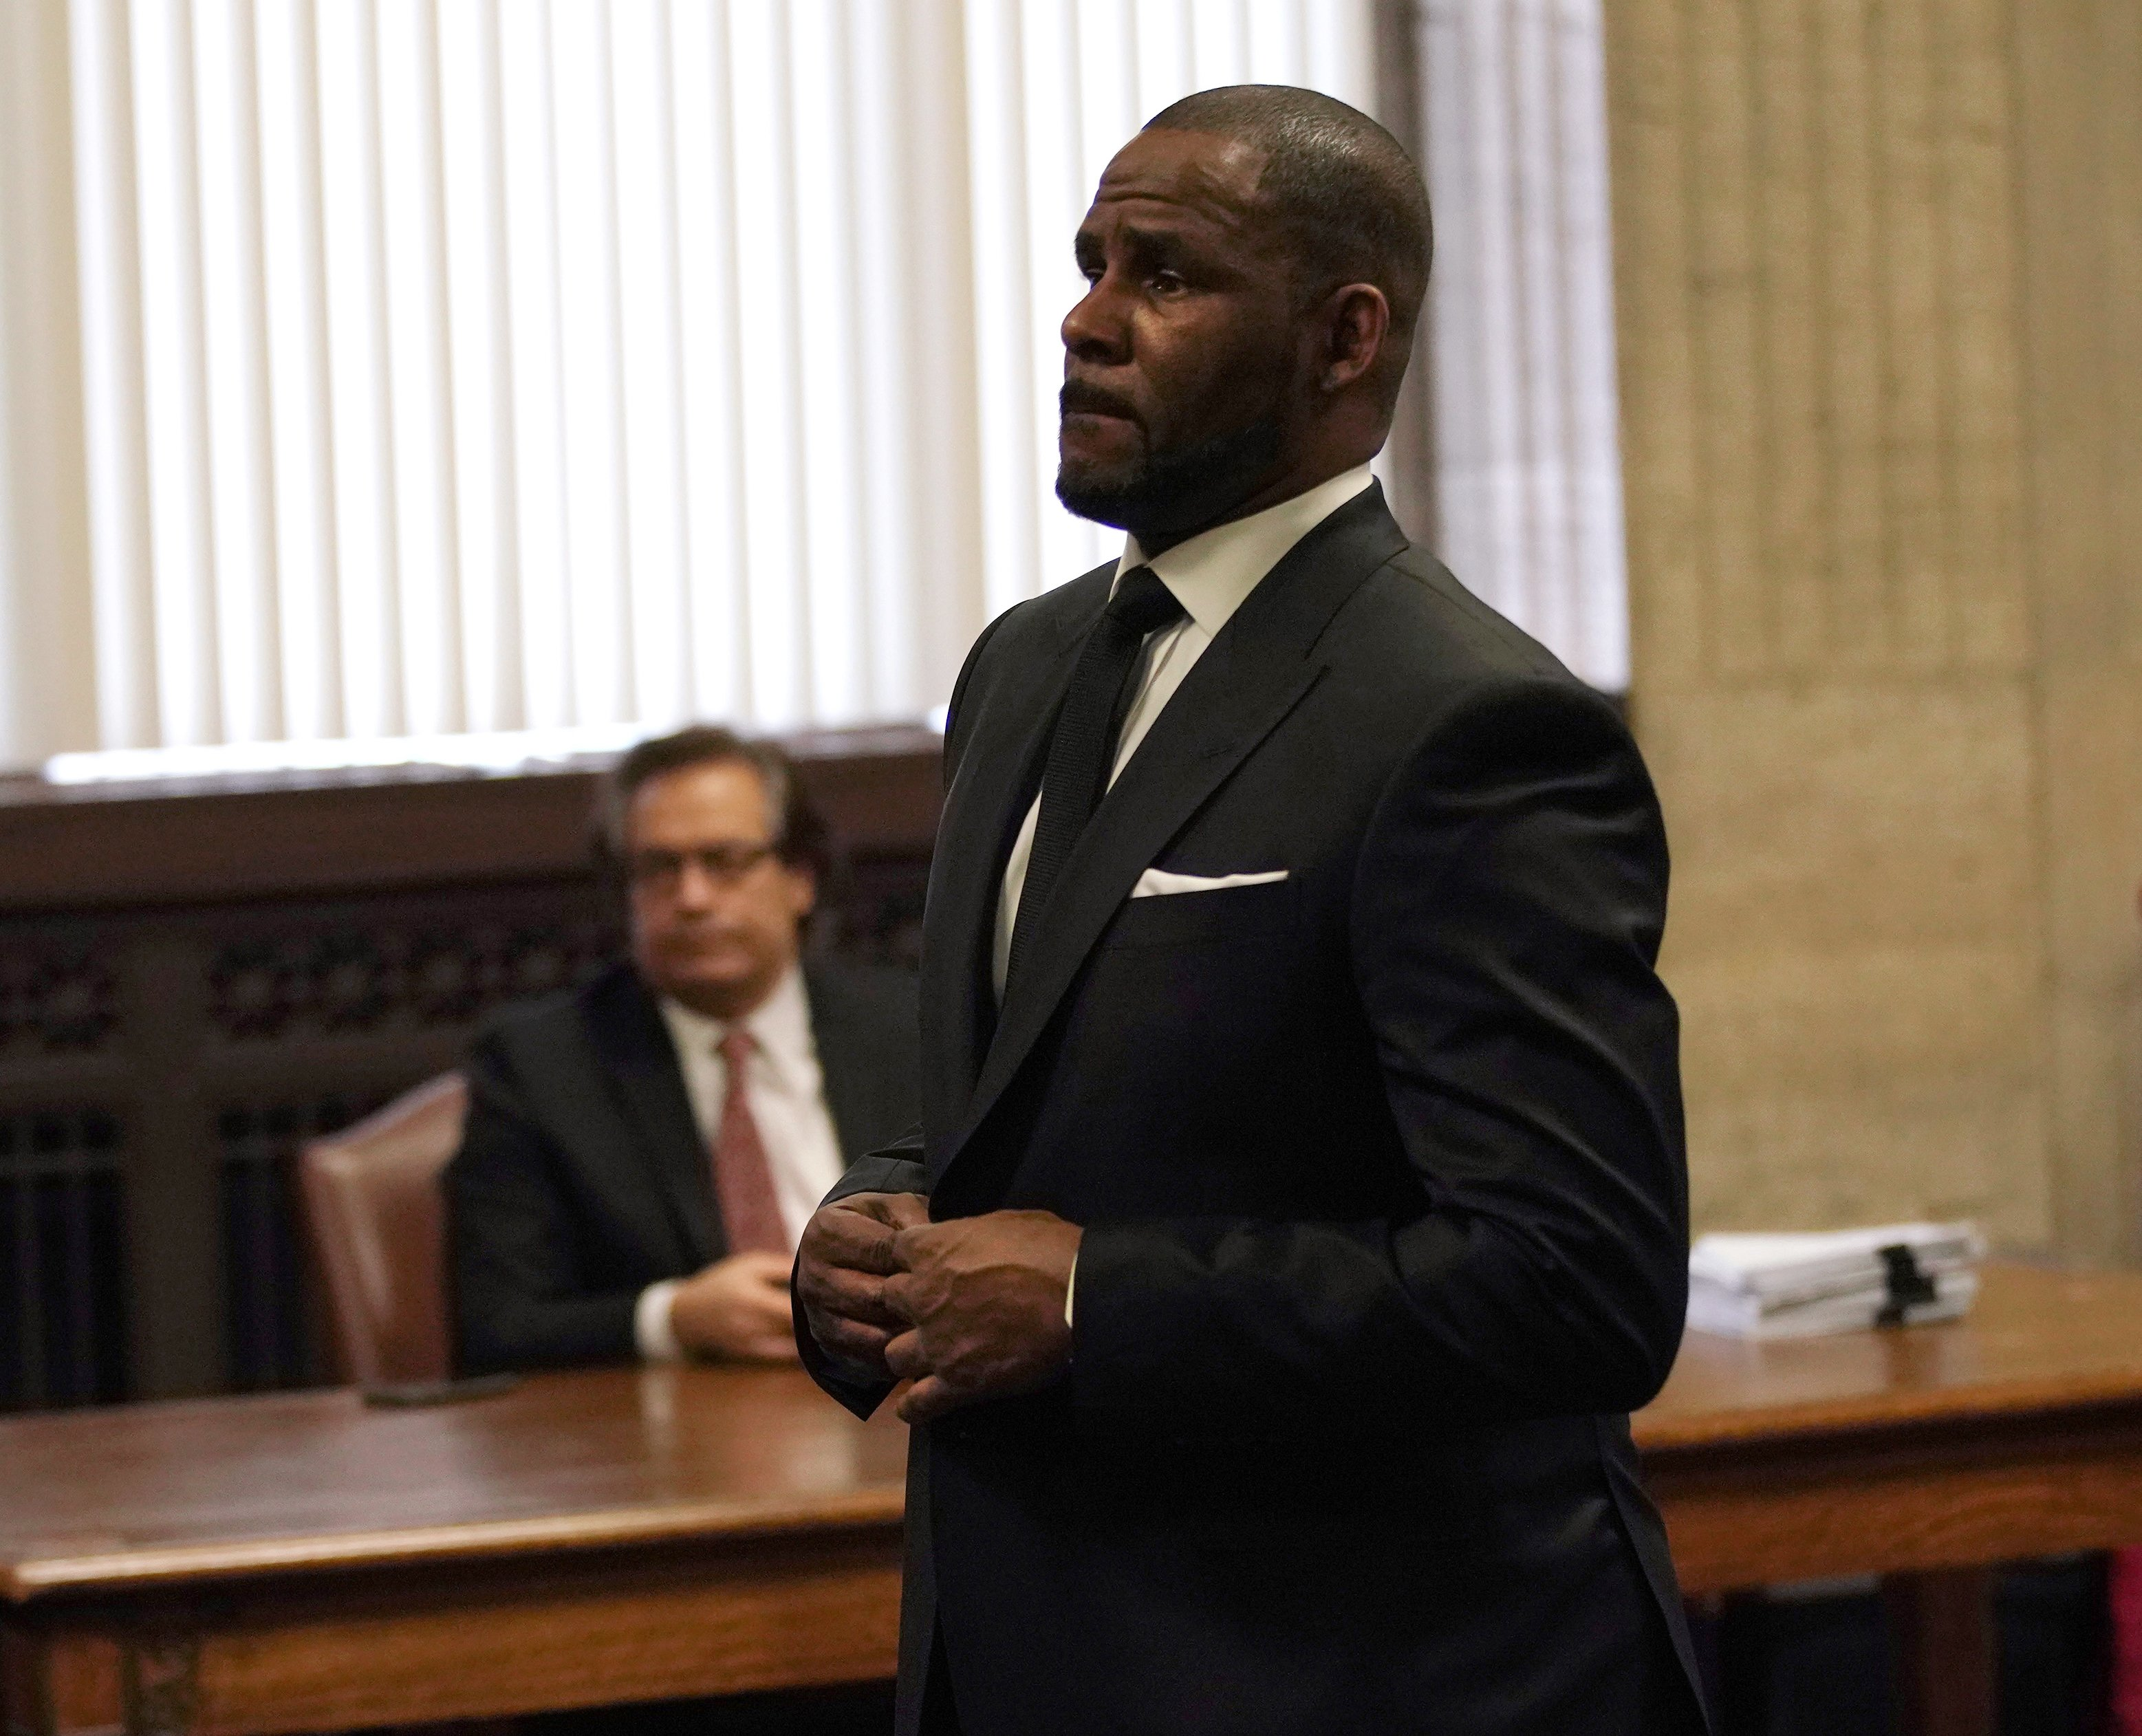 Singer R. Kelly appears in court for a hearing to request that he be allowed to travel to Dubai at the Leighton Criminal Court Building on March 22, 2019 in Chicago, Illinois. R. Kelly appeared before a judge to request permission to travel to Dubai to perform in concerts. (Photo by E. Jason Wambsgans-Pool/Getty Images)